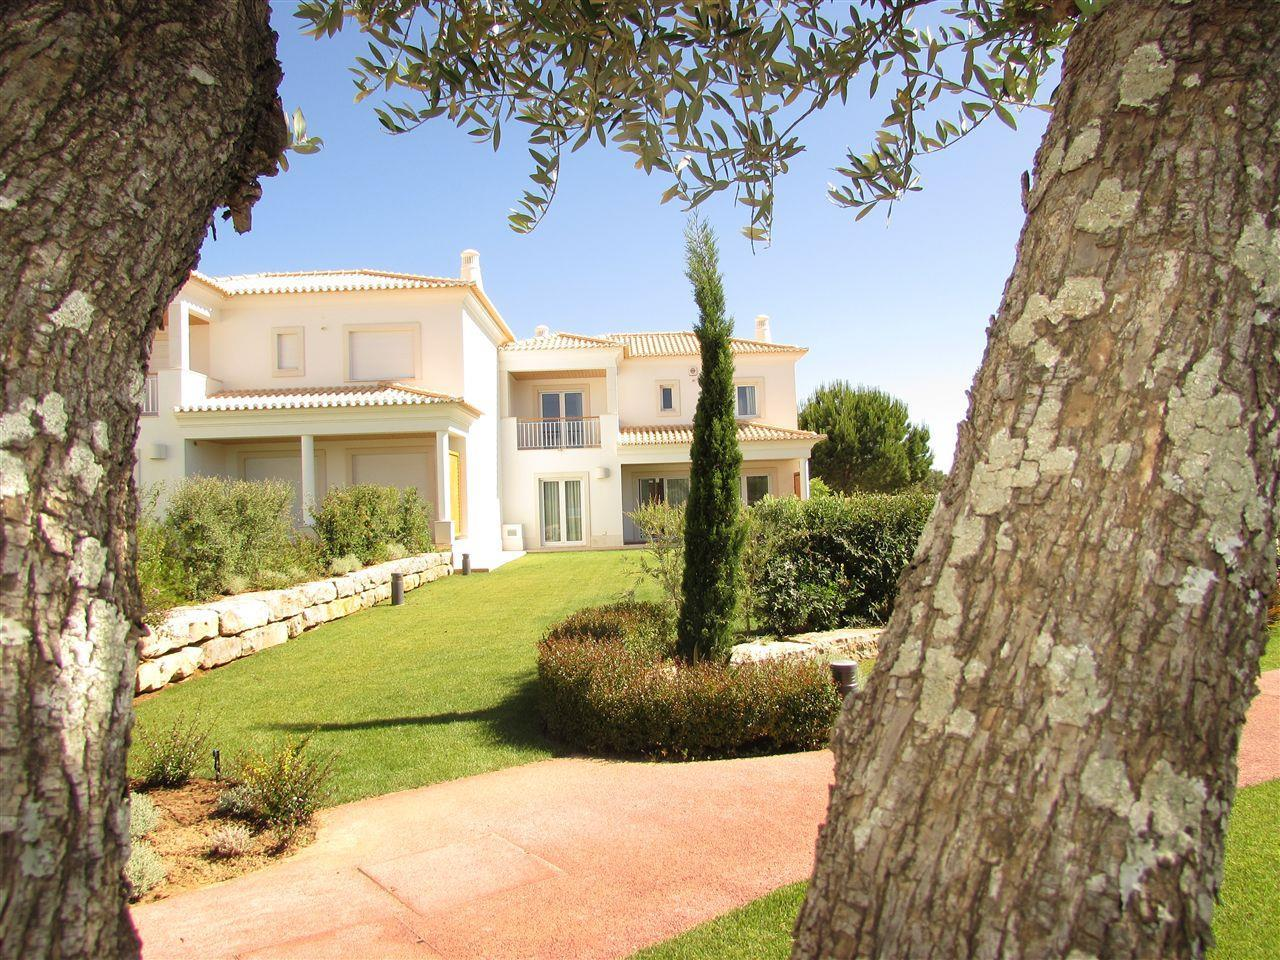 Casa Unifamiliar por un Venta en Terraced house, 5 bedrooms, for Sale Loule, Algarve Portugal